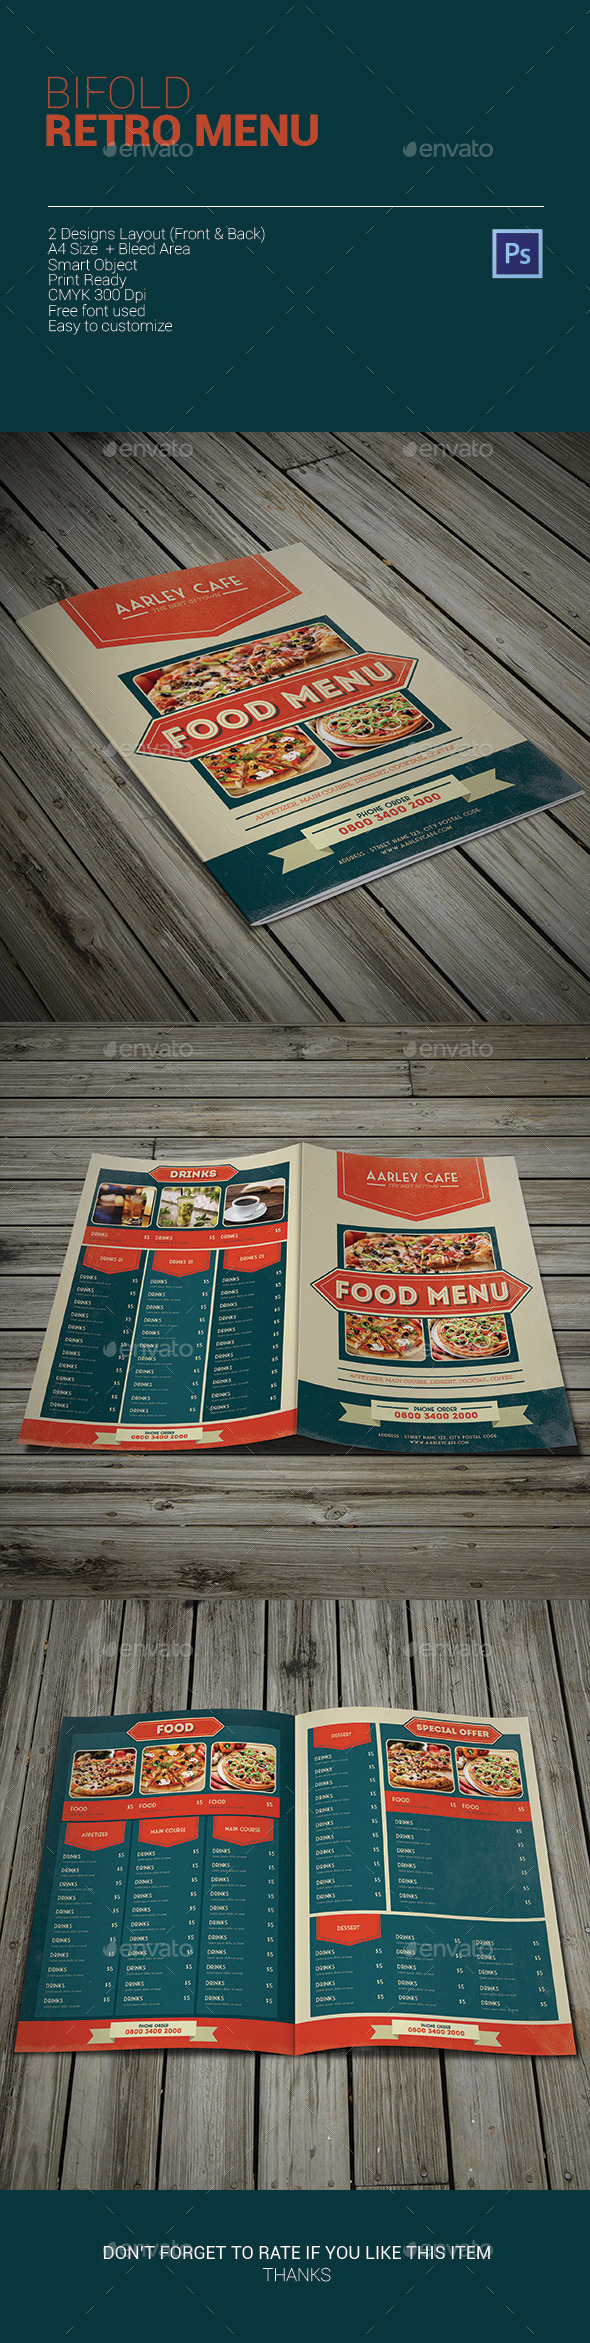 Bifold Retro Menu - Food Menus Print Templates